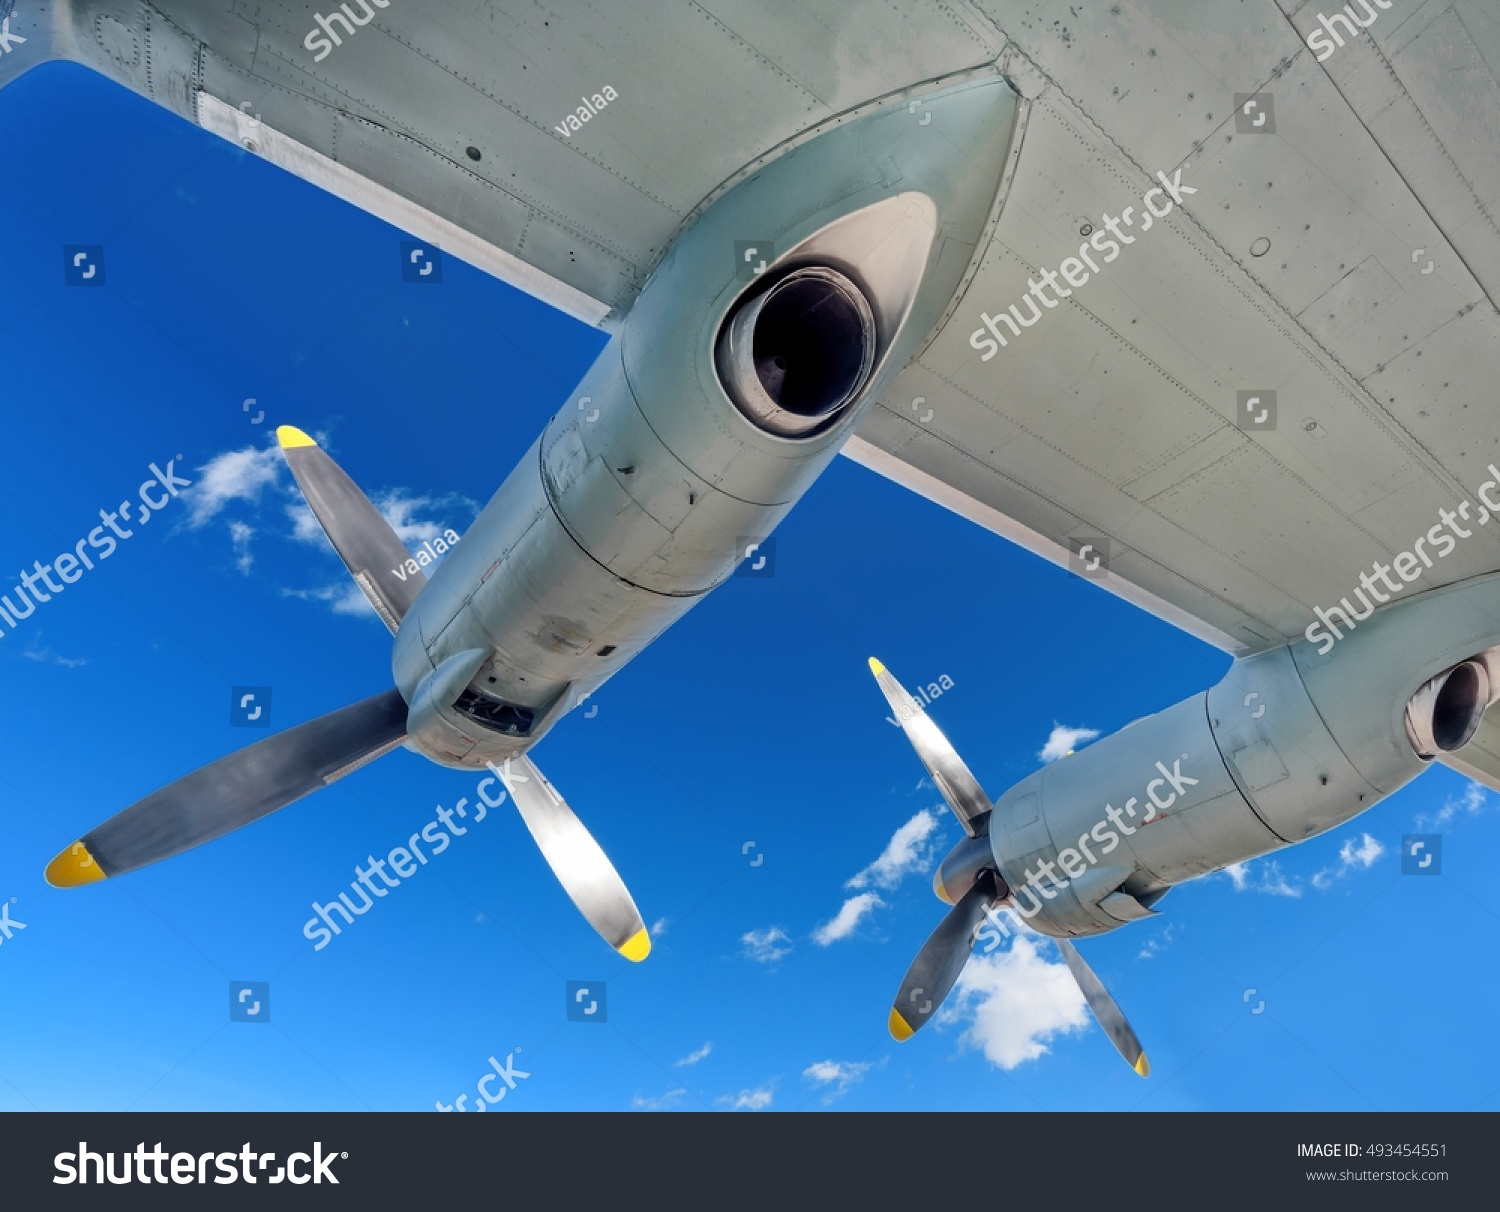 Aircraft Maintenance View Airplane Turbo Prop Stock Photo Edit Now Parts Of An Engine Exhaust Interior With Other Plane Bottom